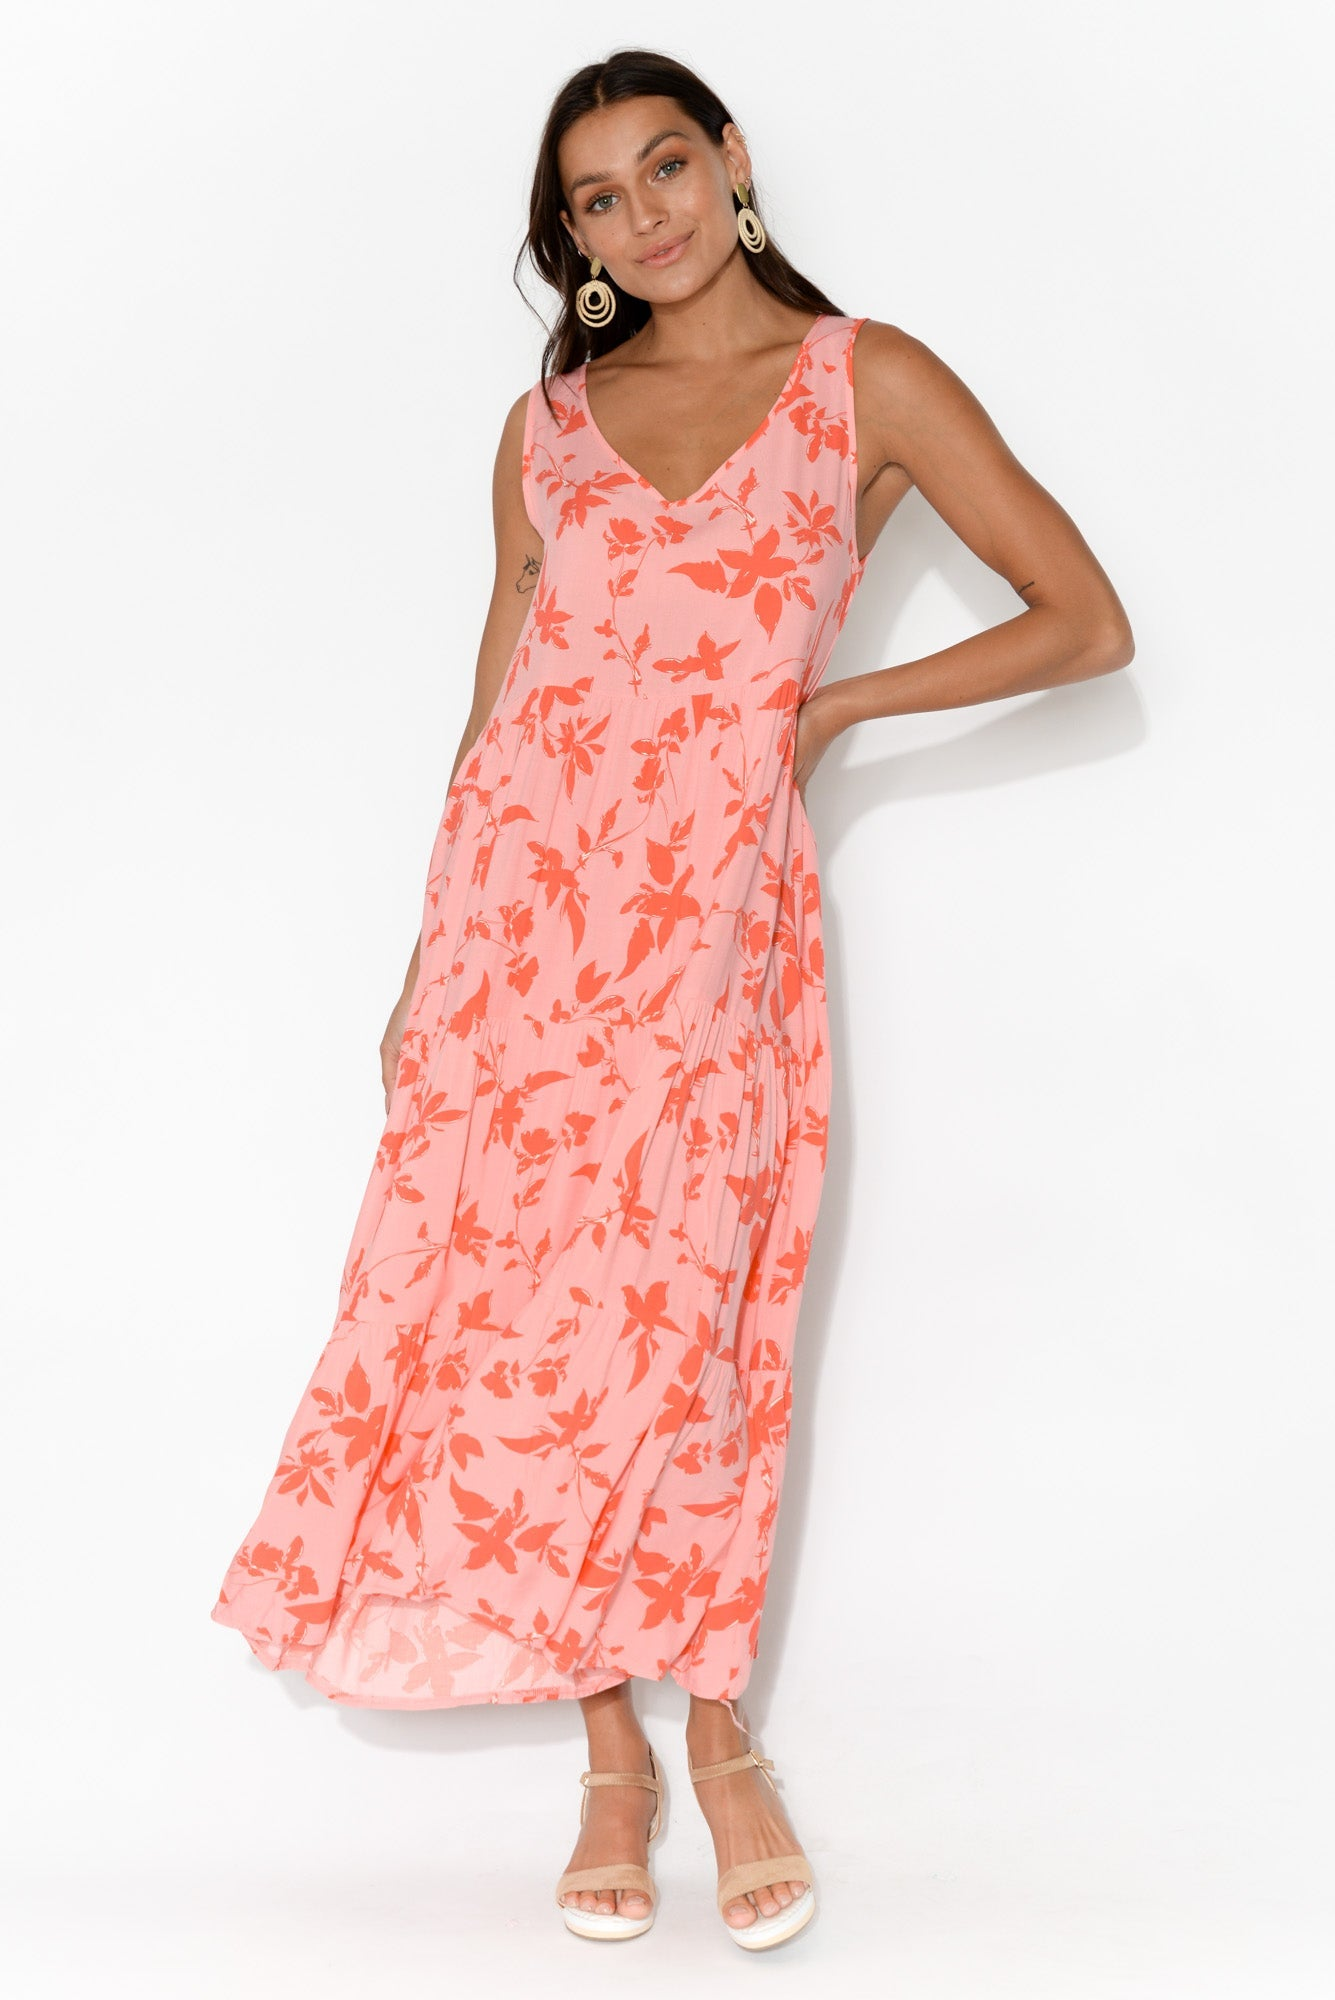 Everly Red Leaf Sleeveless Maxi Dress